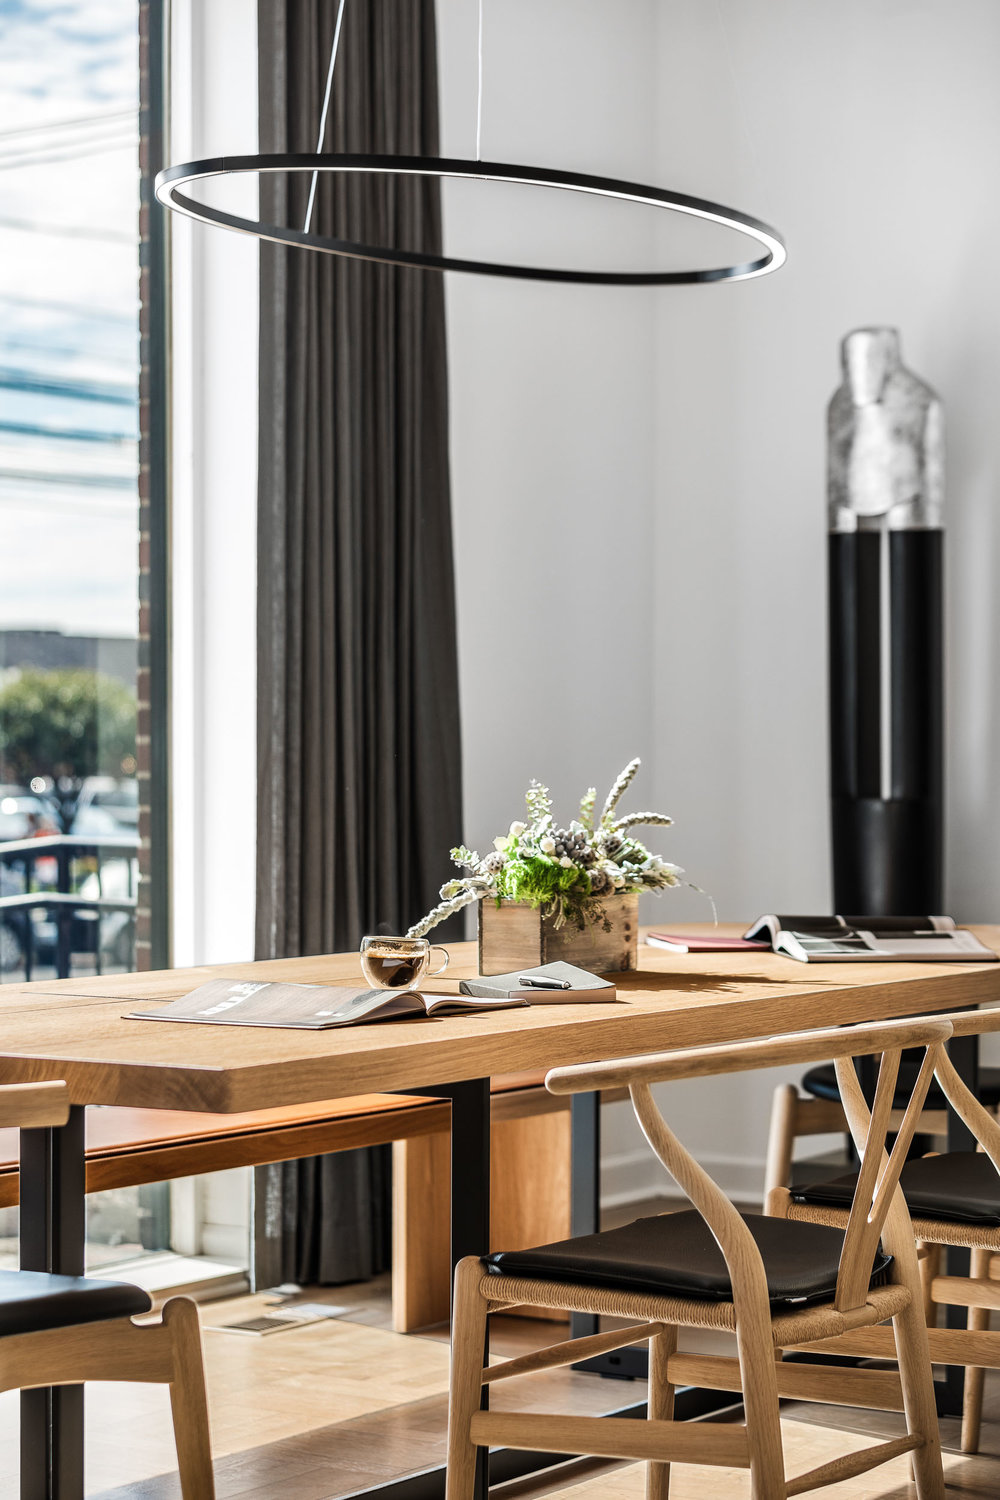 Product photography of luxury kitchen table and bench in Greenwi